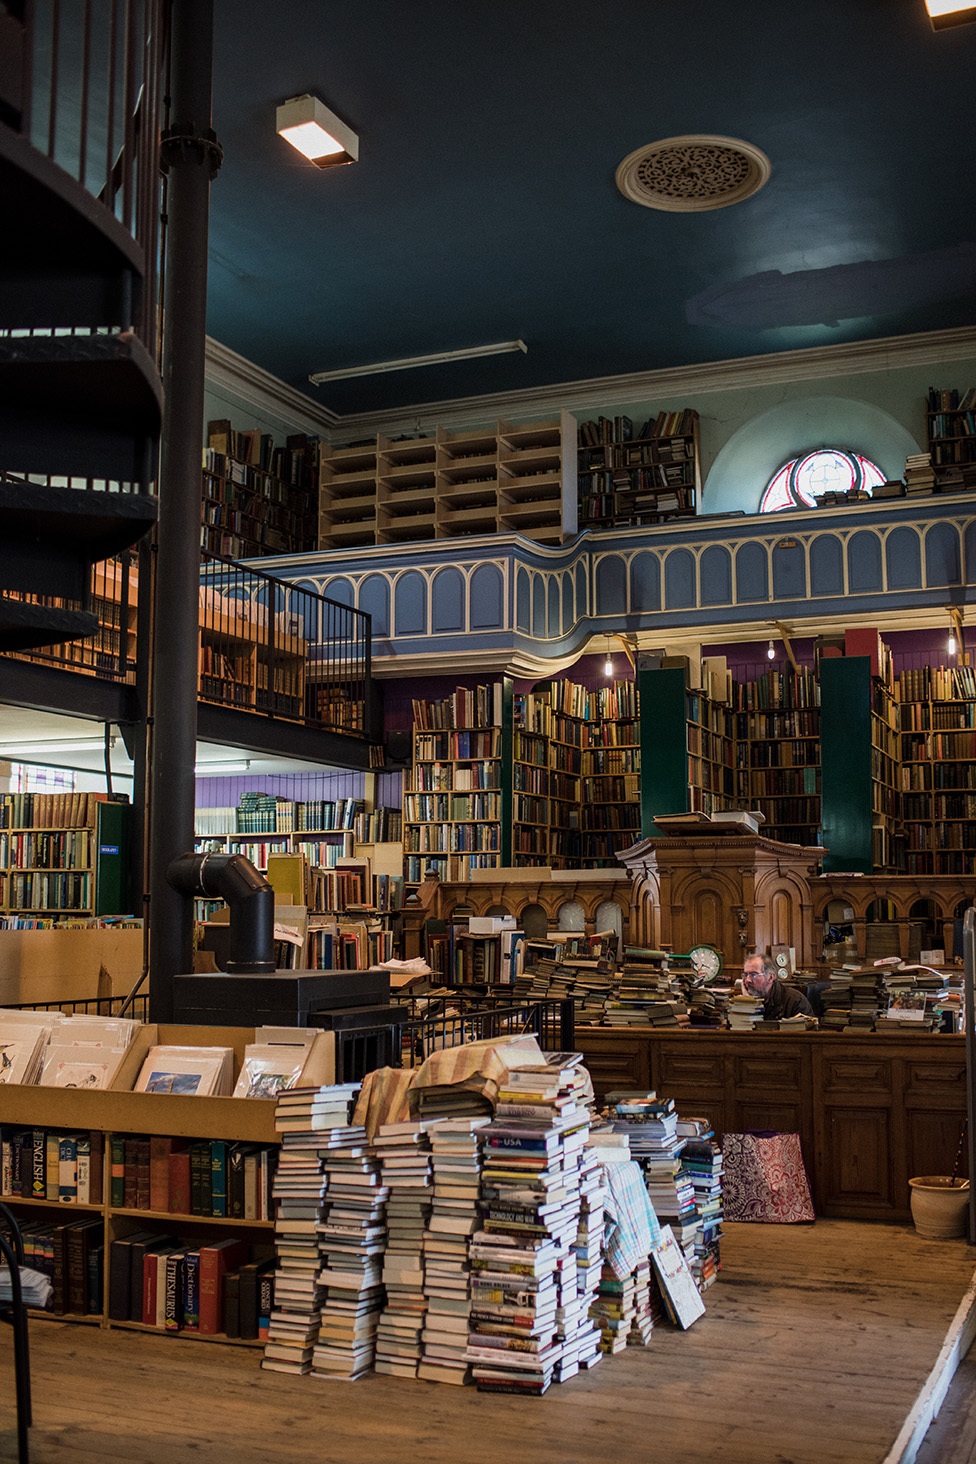 Leakey's Bookshop in Inverness is based in a former cathedral.